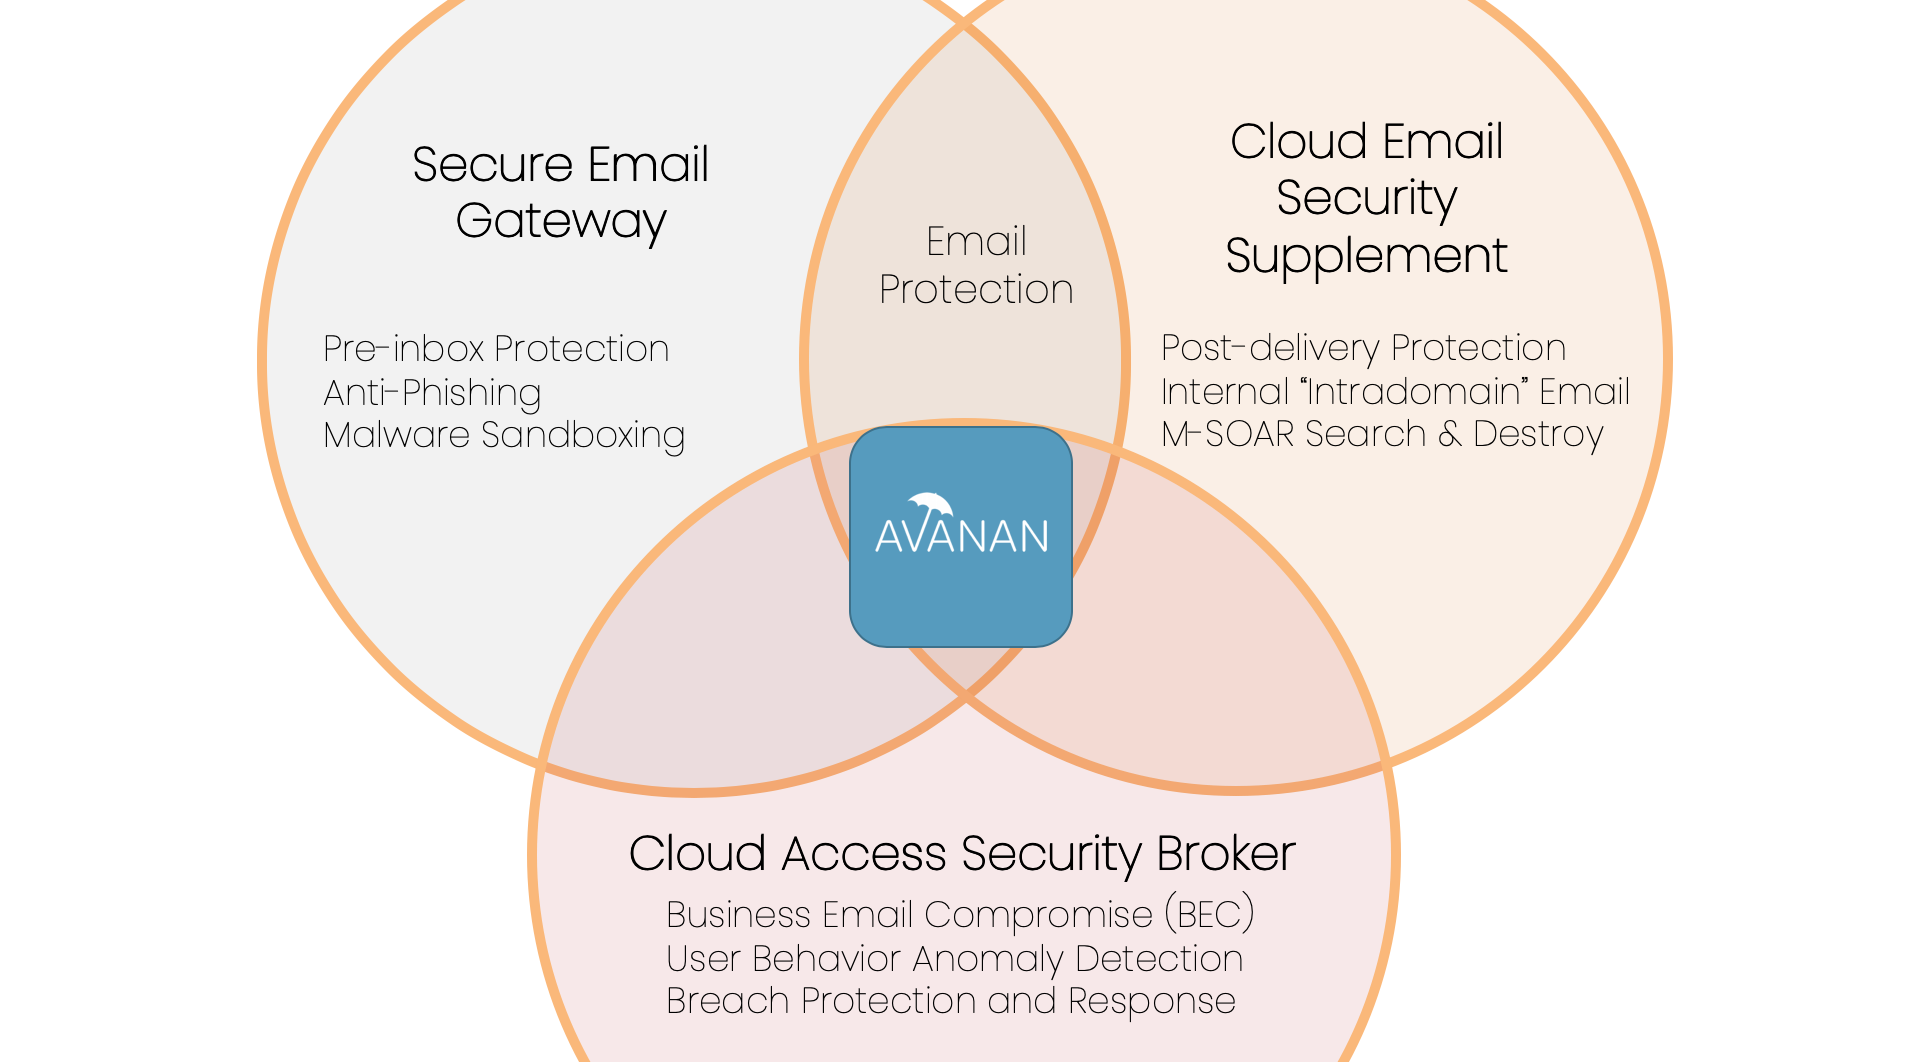 Avanan-venn-diagram-email-security-market